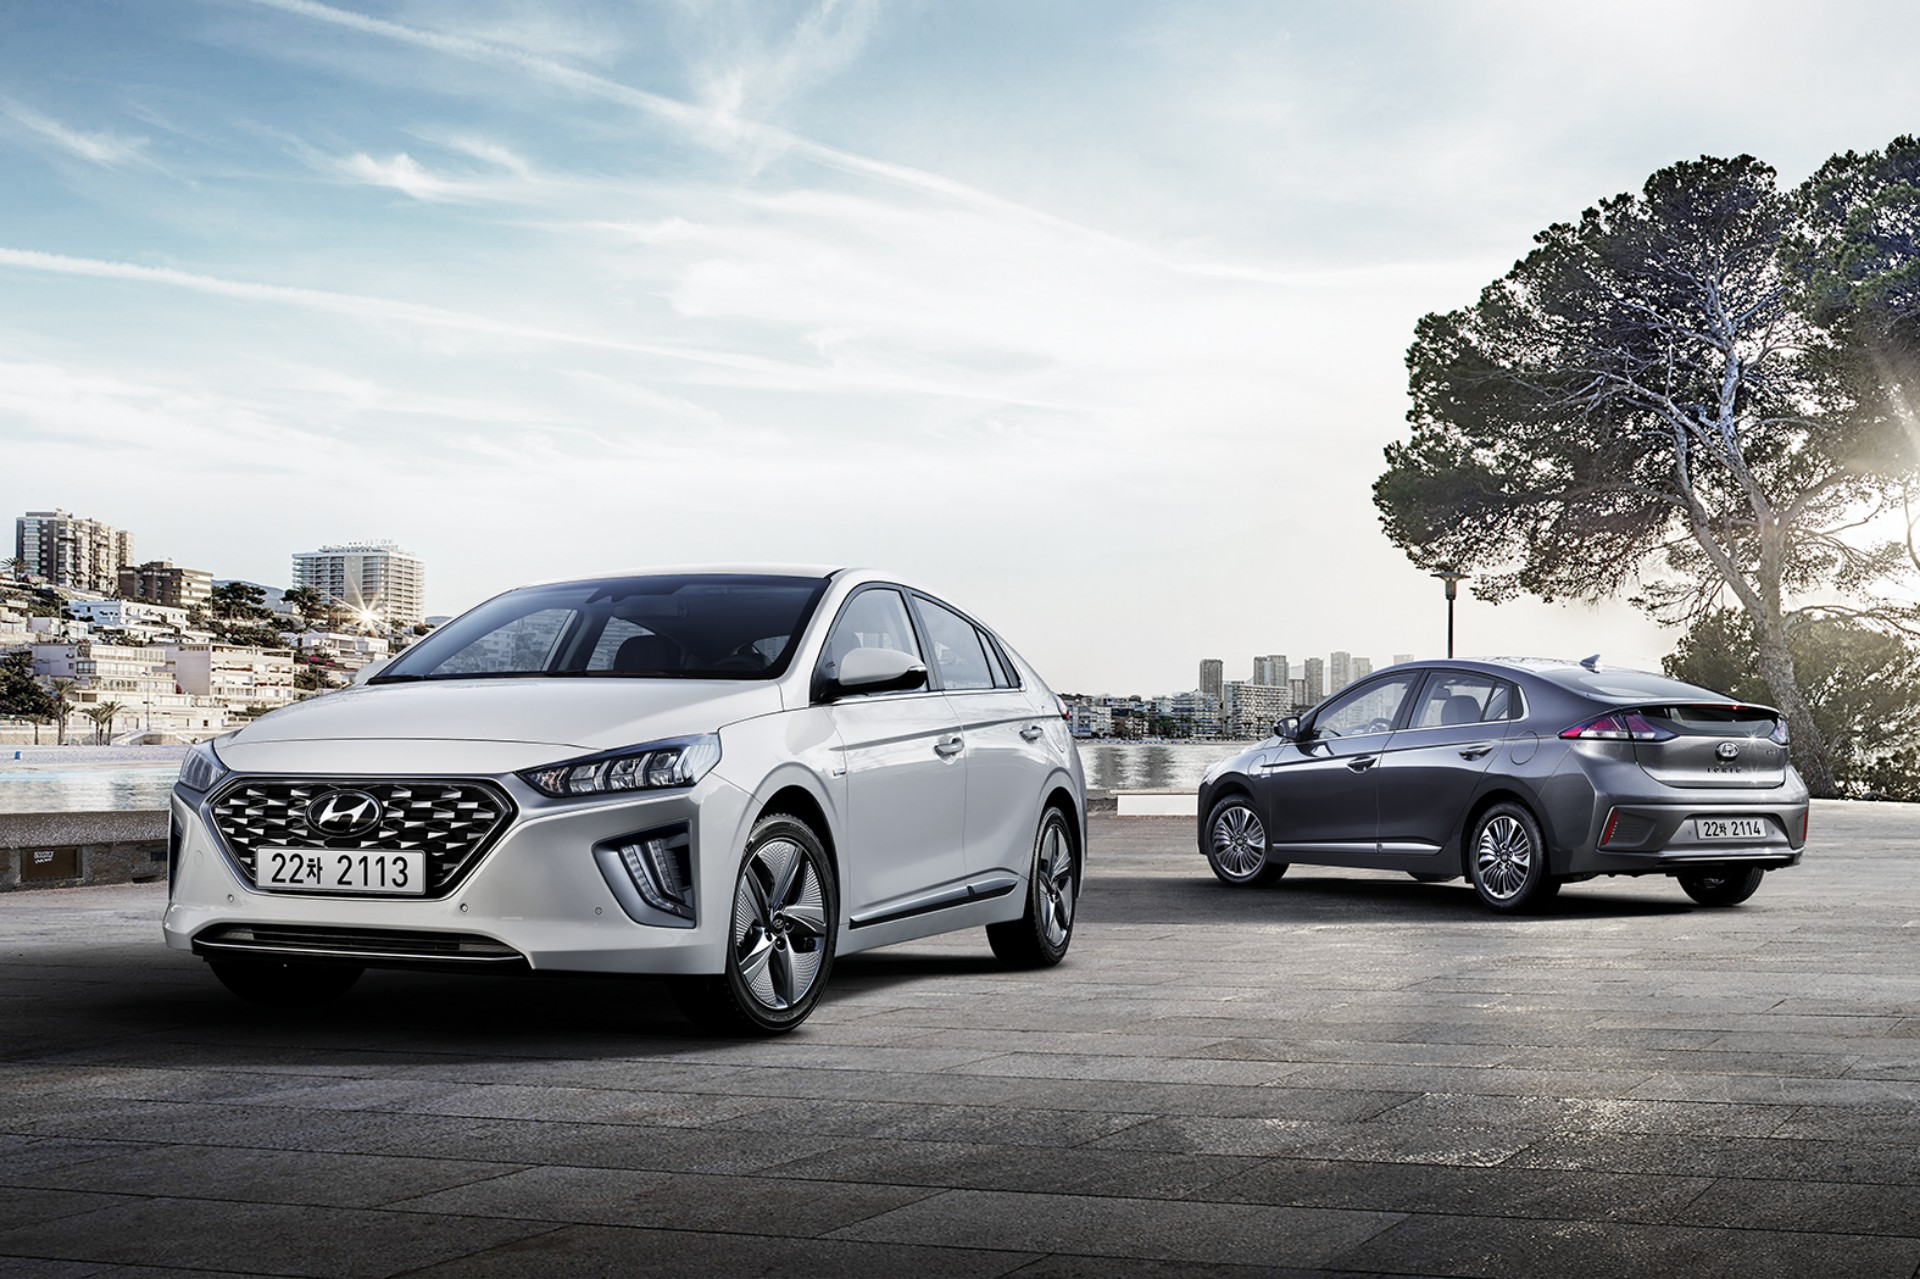 2020 Hyundai Ioniq Hybrid & Electric Revealed